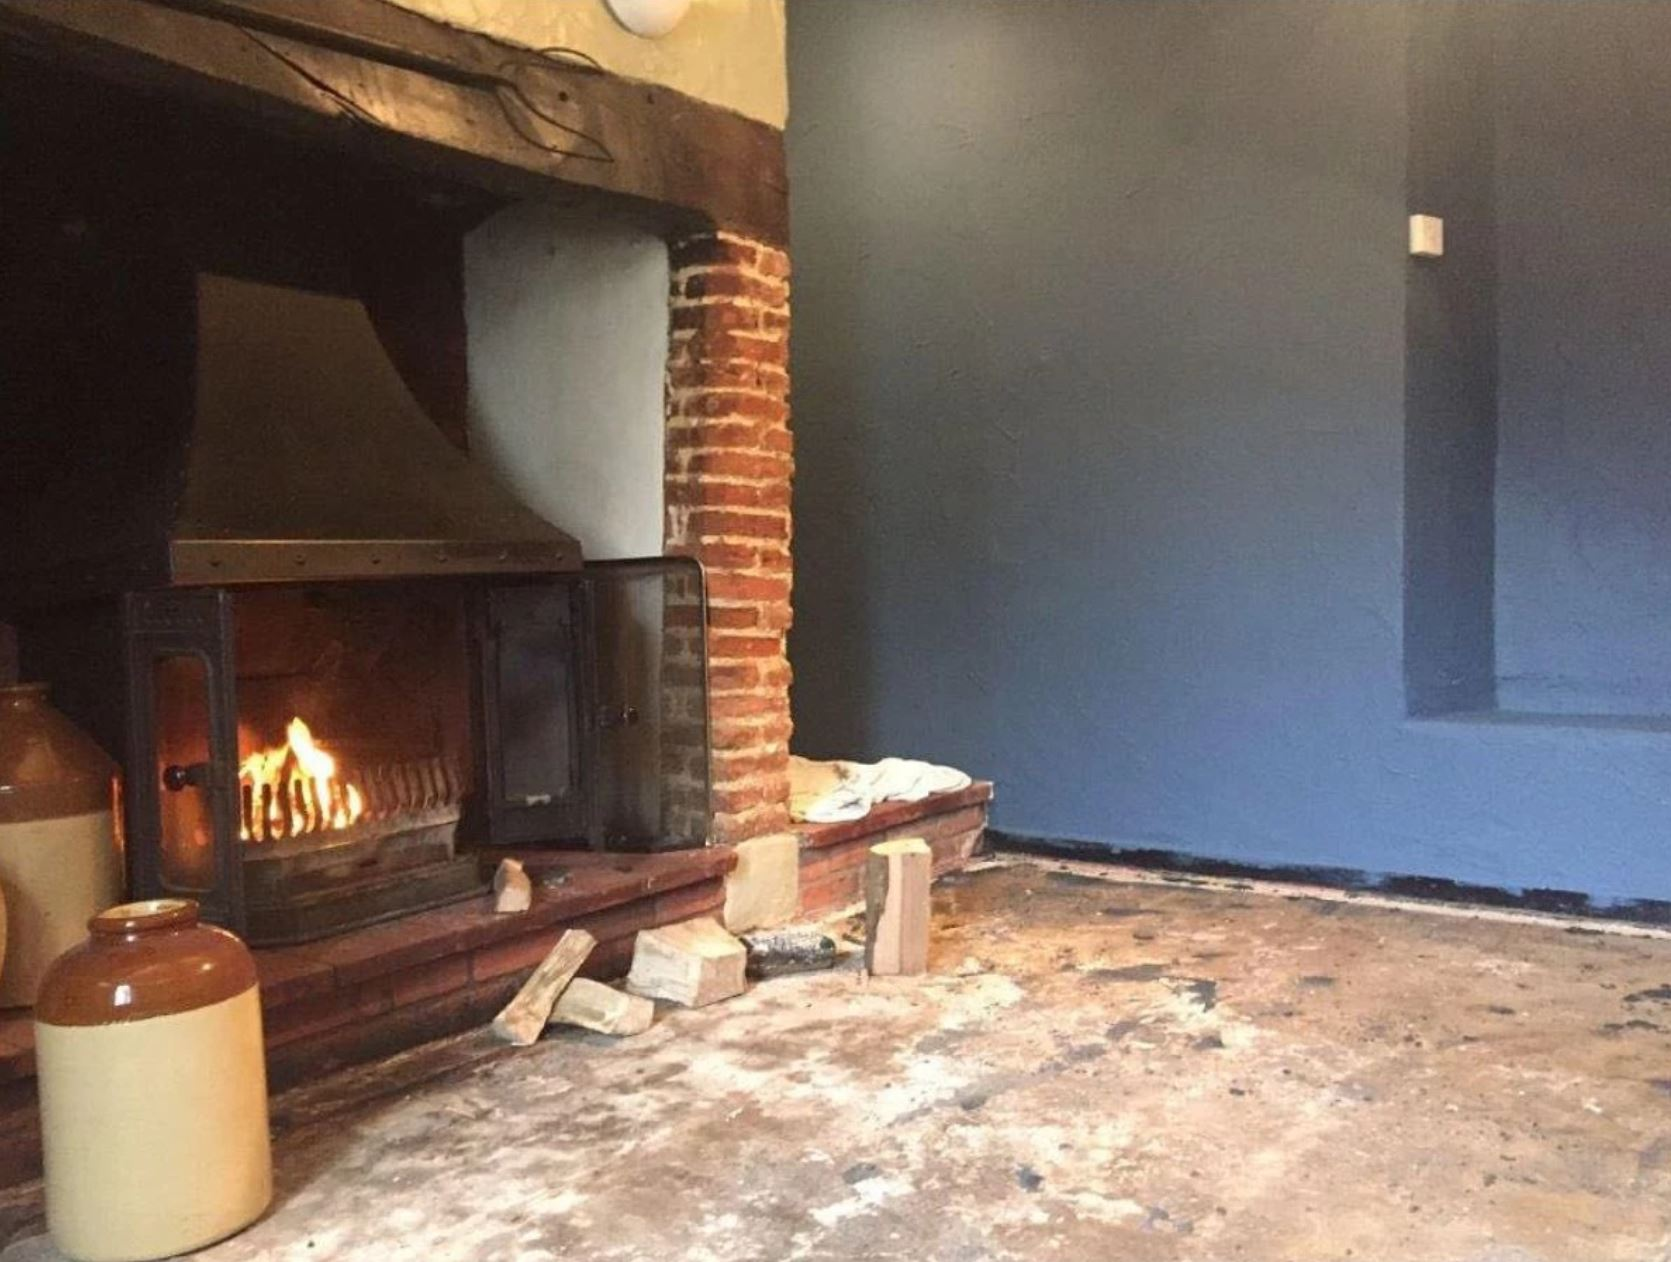 The Barsham Arms Fireplace